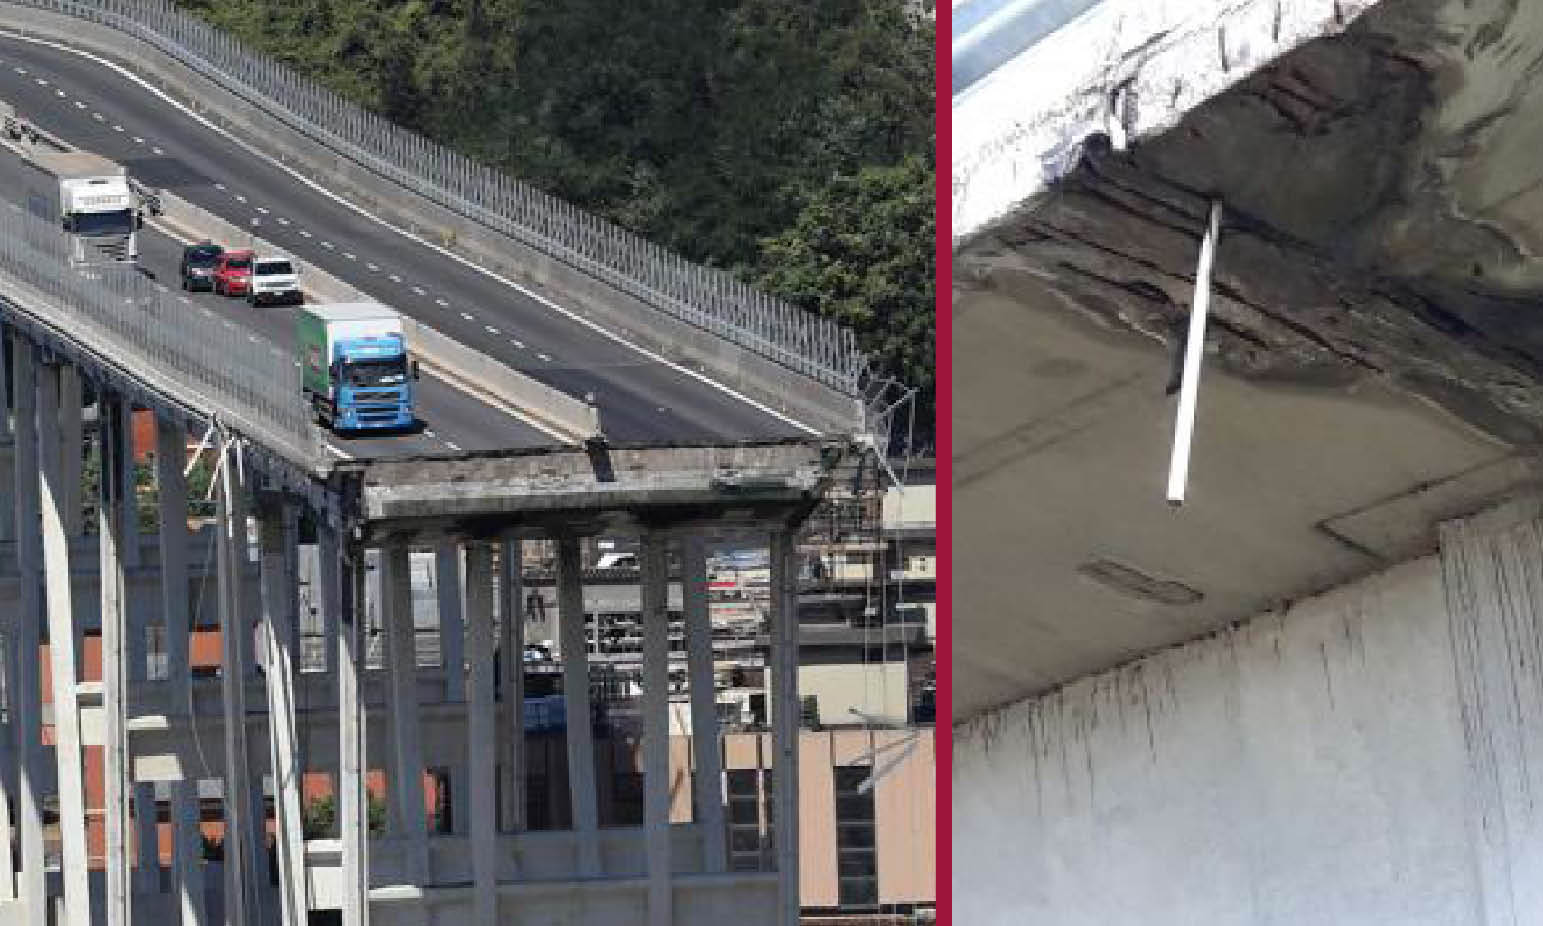 ITALY HIGHWAYS ALERT: FALSE REPORTS FOR DANGEROUS BRIDGES, 3 ARRESTS